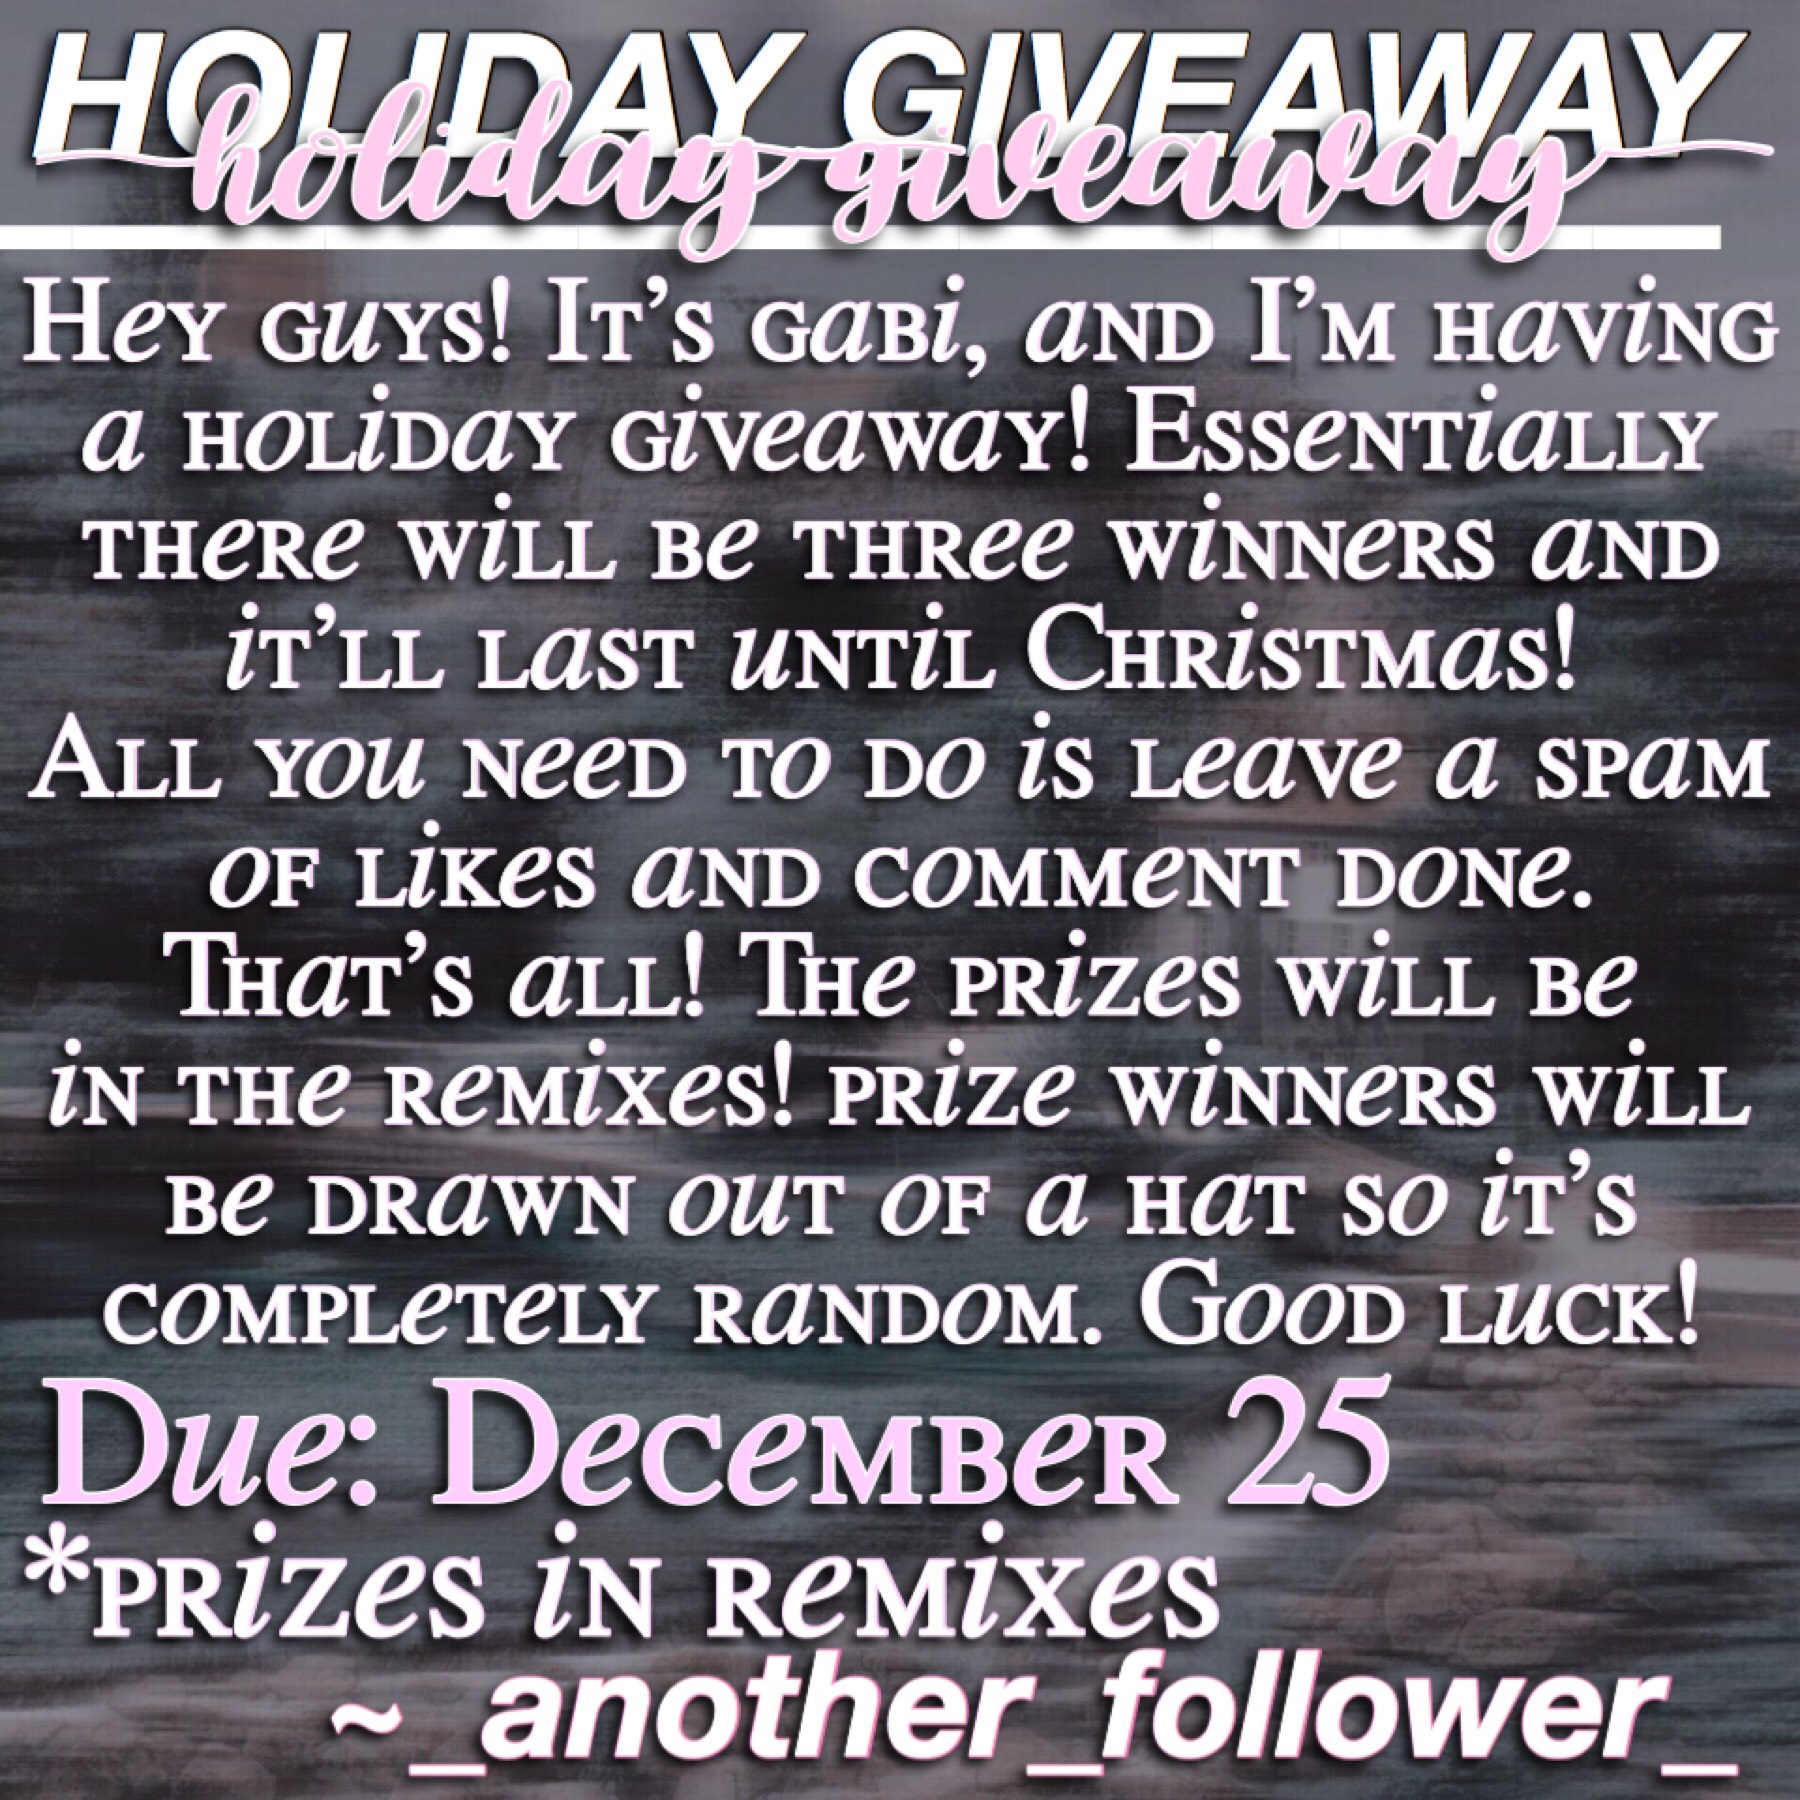 Happy thanksgiving everyone! I hope you had a great day if you do or don't celebrate it. I also hope you enter this and you find the prizes good! This is a holiday giveaway but it's also kind of in honor of my return to pc and me reaching 24k!